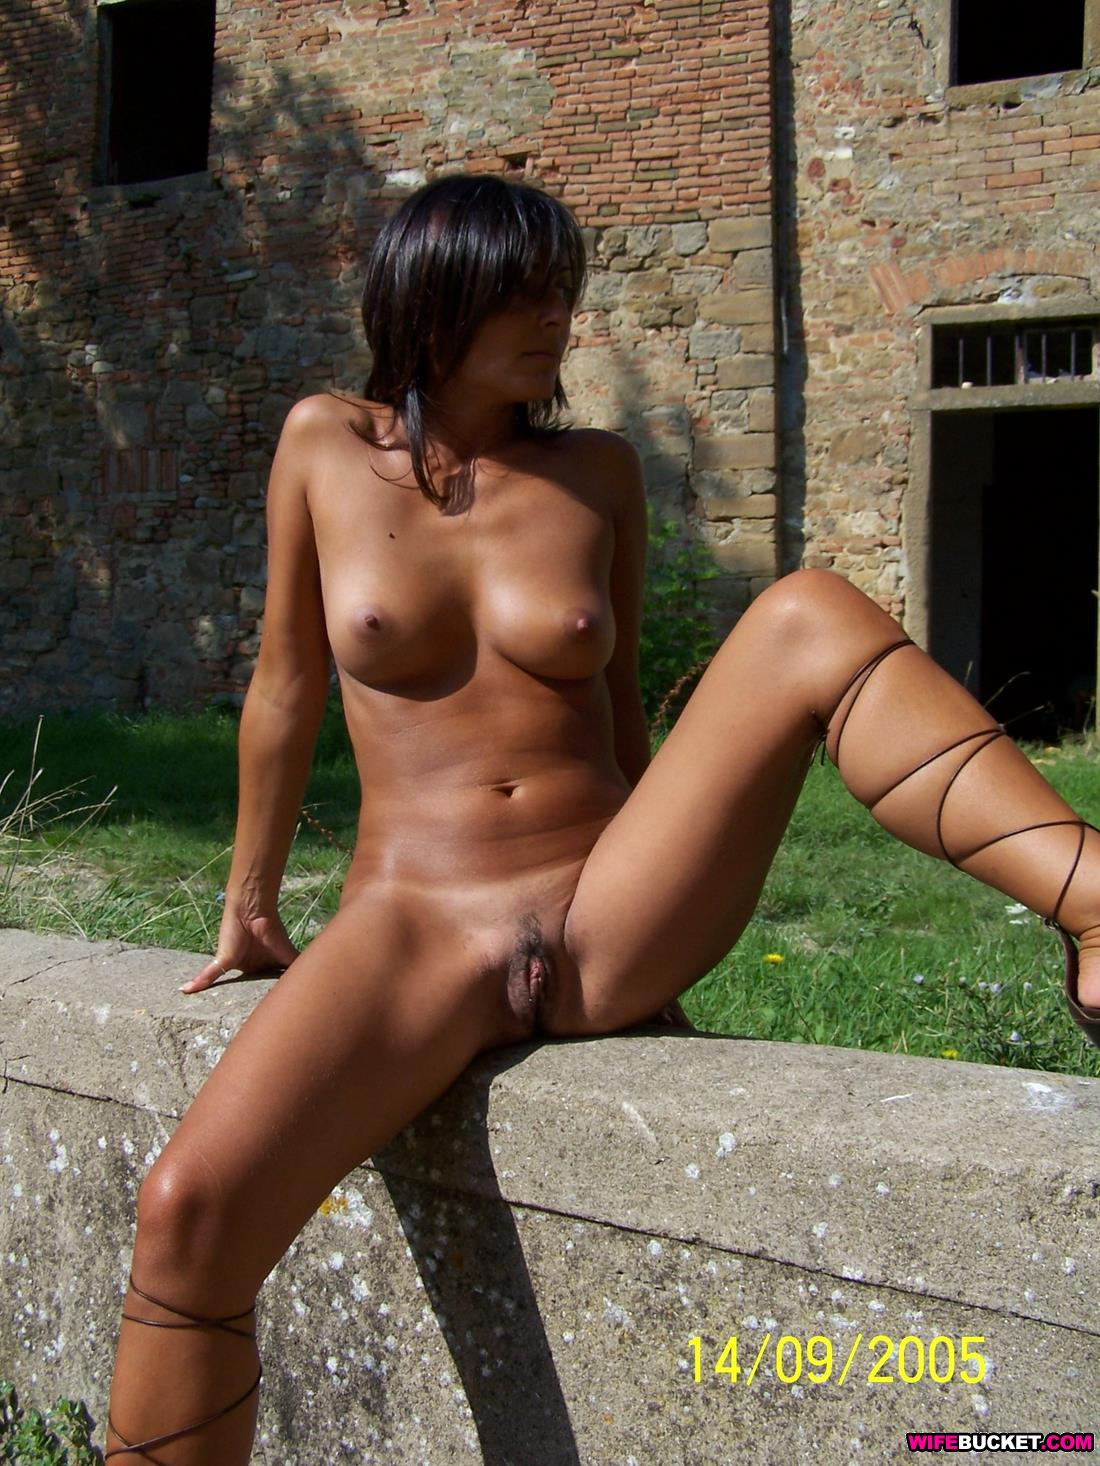 ebony petite Suzanne malveaux upskirt have vivid imagination and